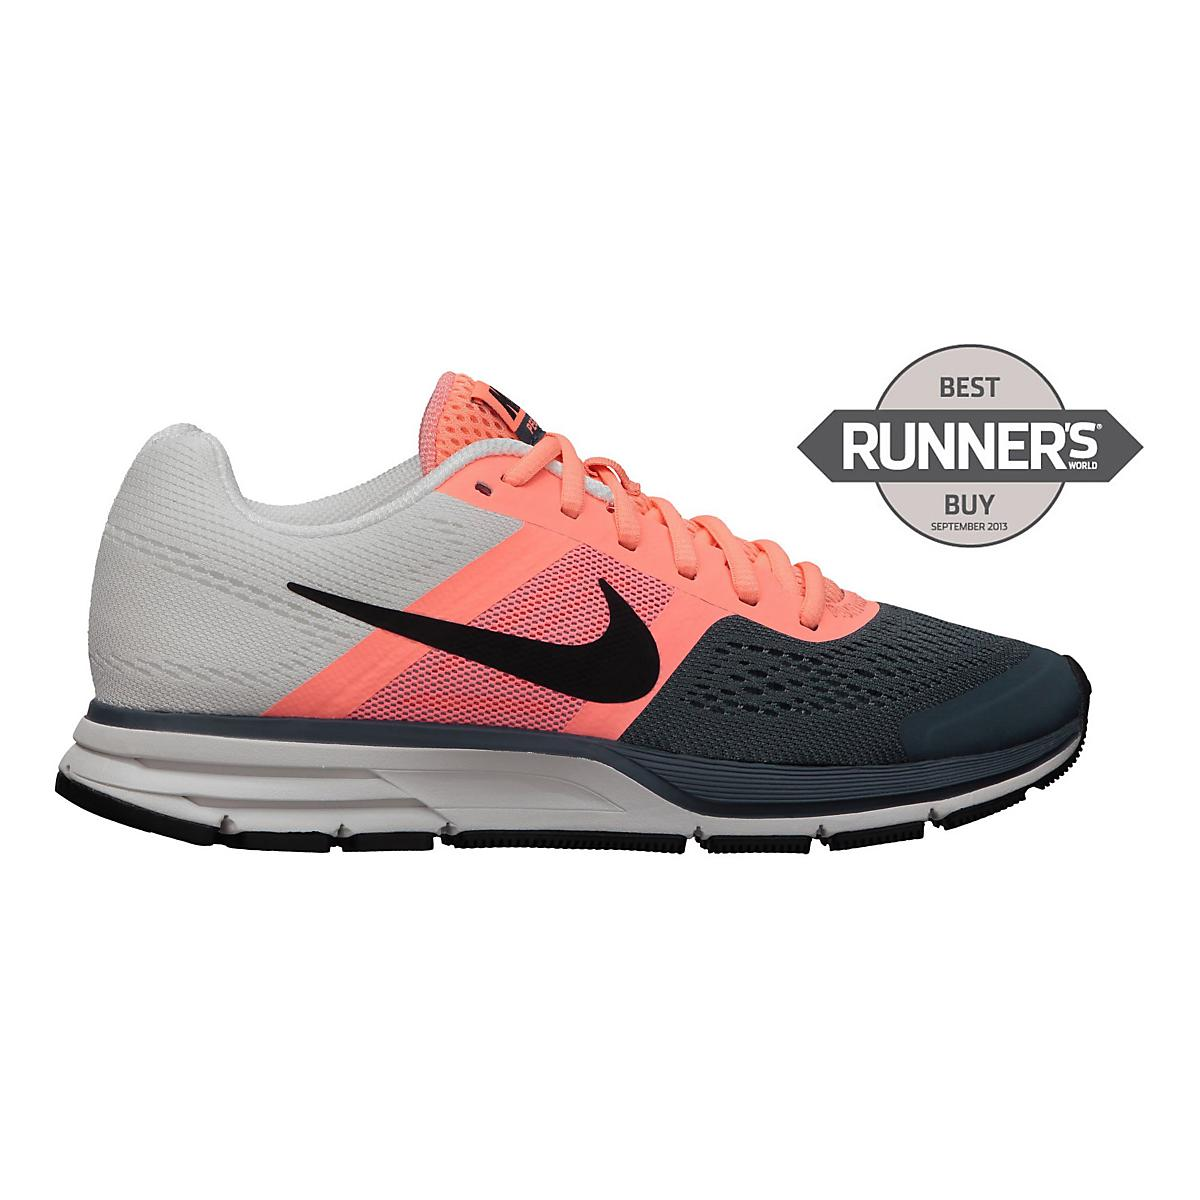 37b2f3af45066 Womens Nike Air Pegasus+ 30 Running Shoe at Road Runner Sports